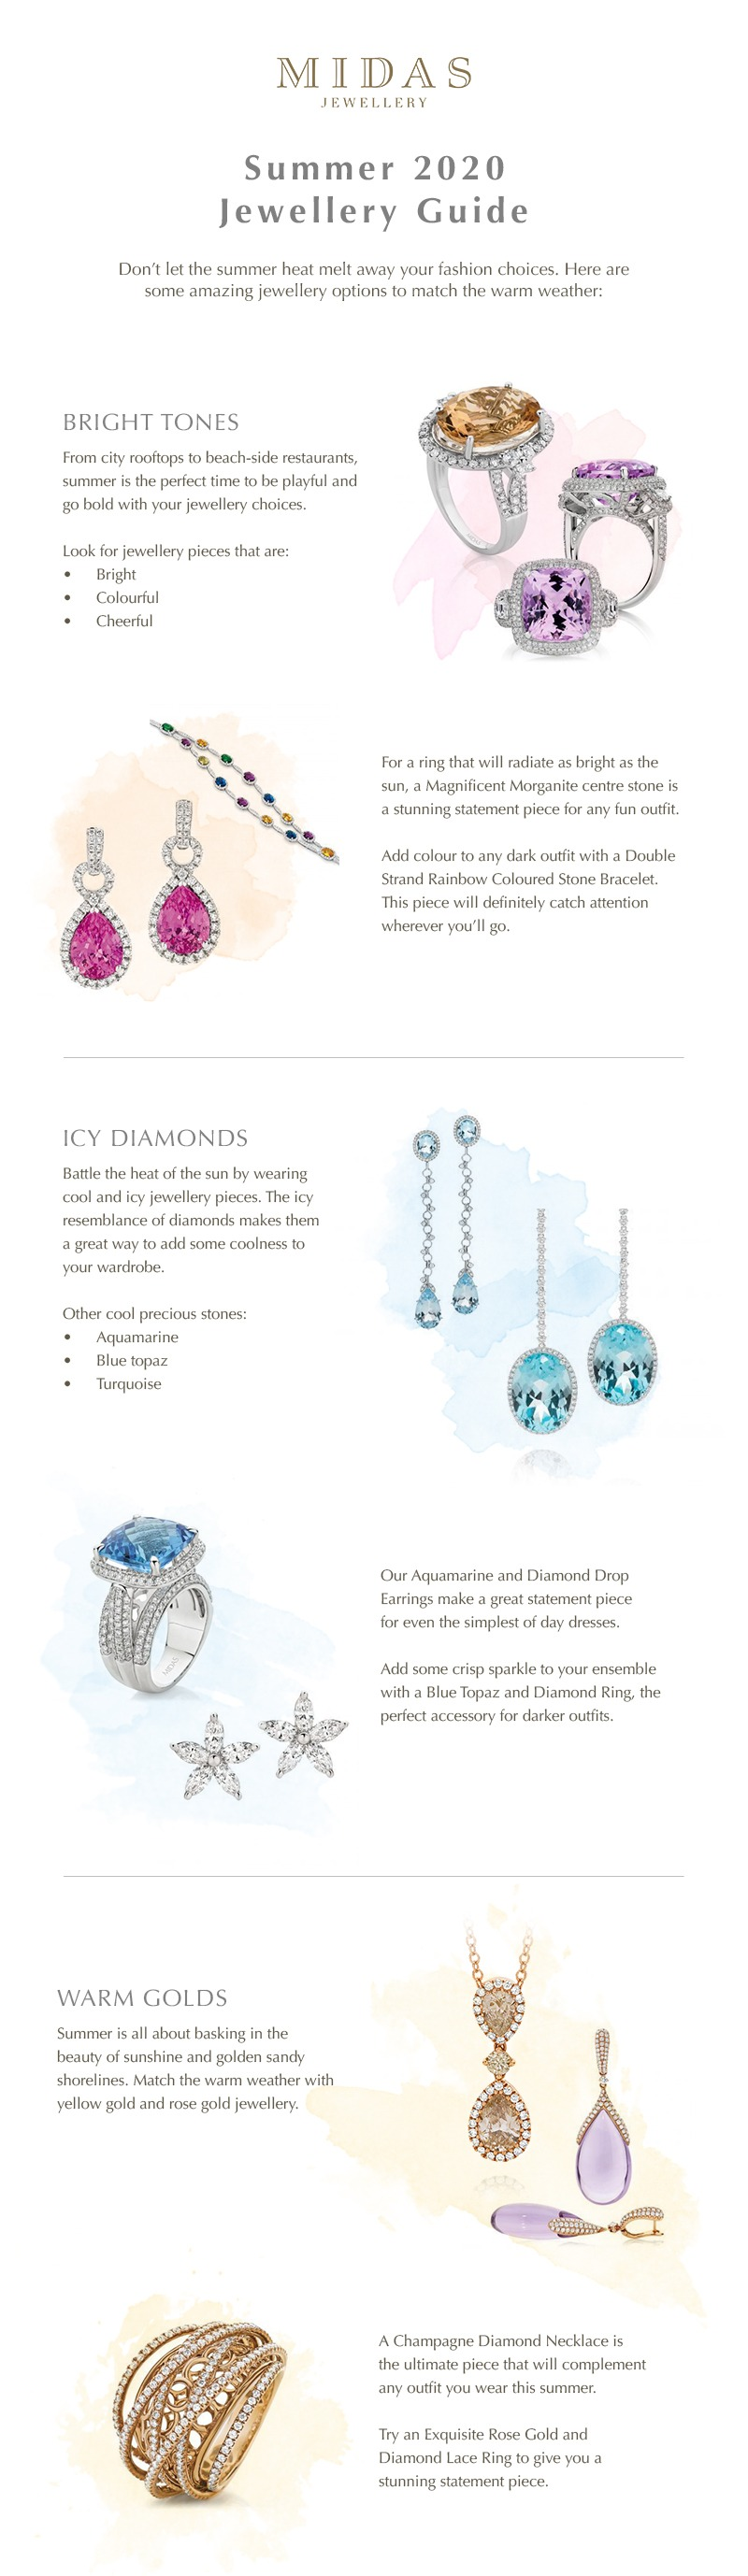 Summer 2020 jewellery guide infographic